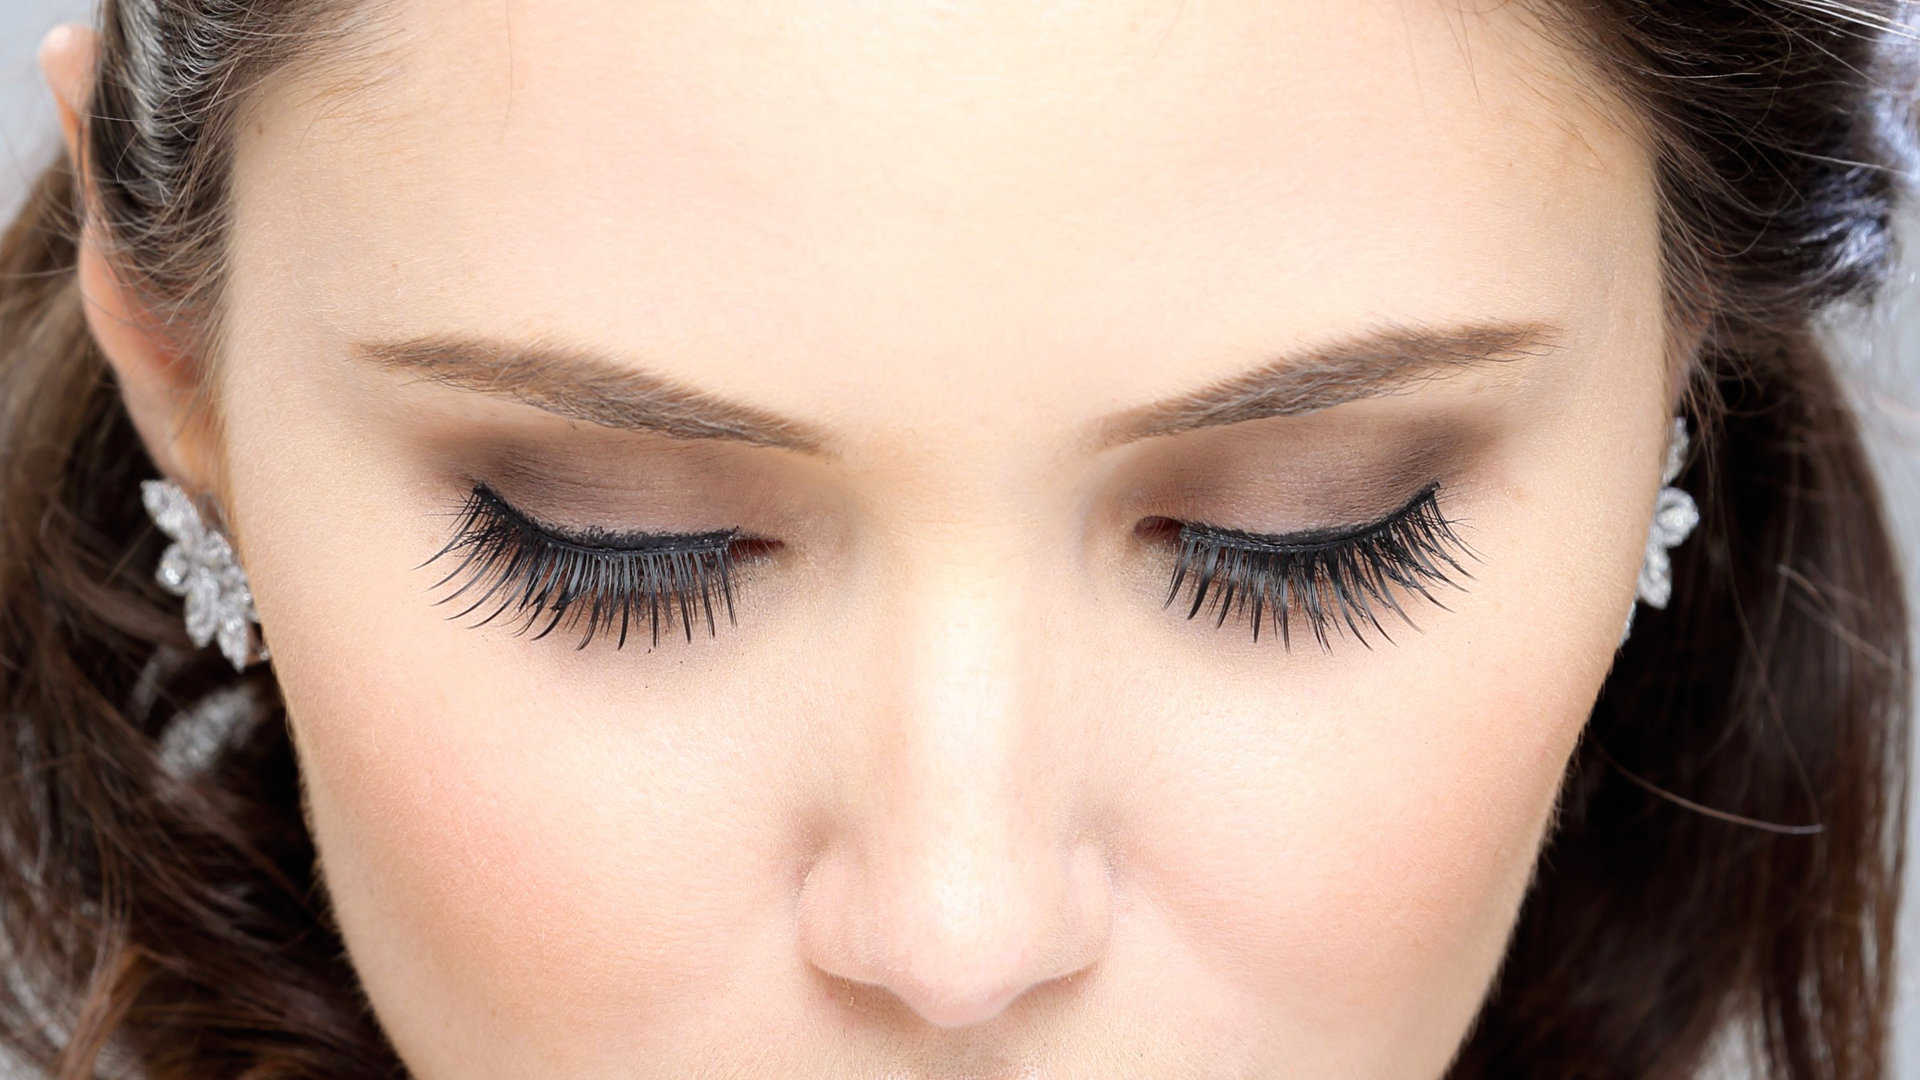 Bridal Eye Beauty Dos And Don'ts - When It Comes To Wedding Day Eye Makeup, There's No Room For Error